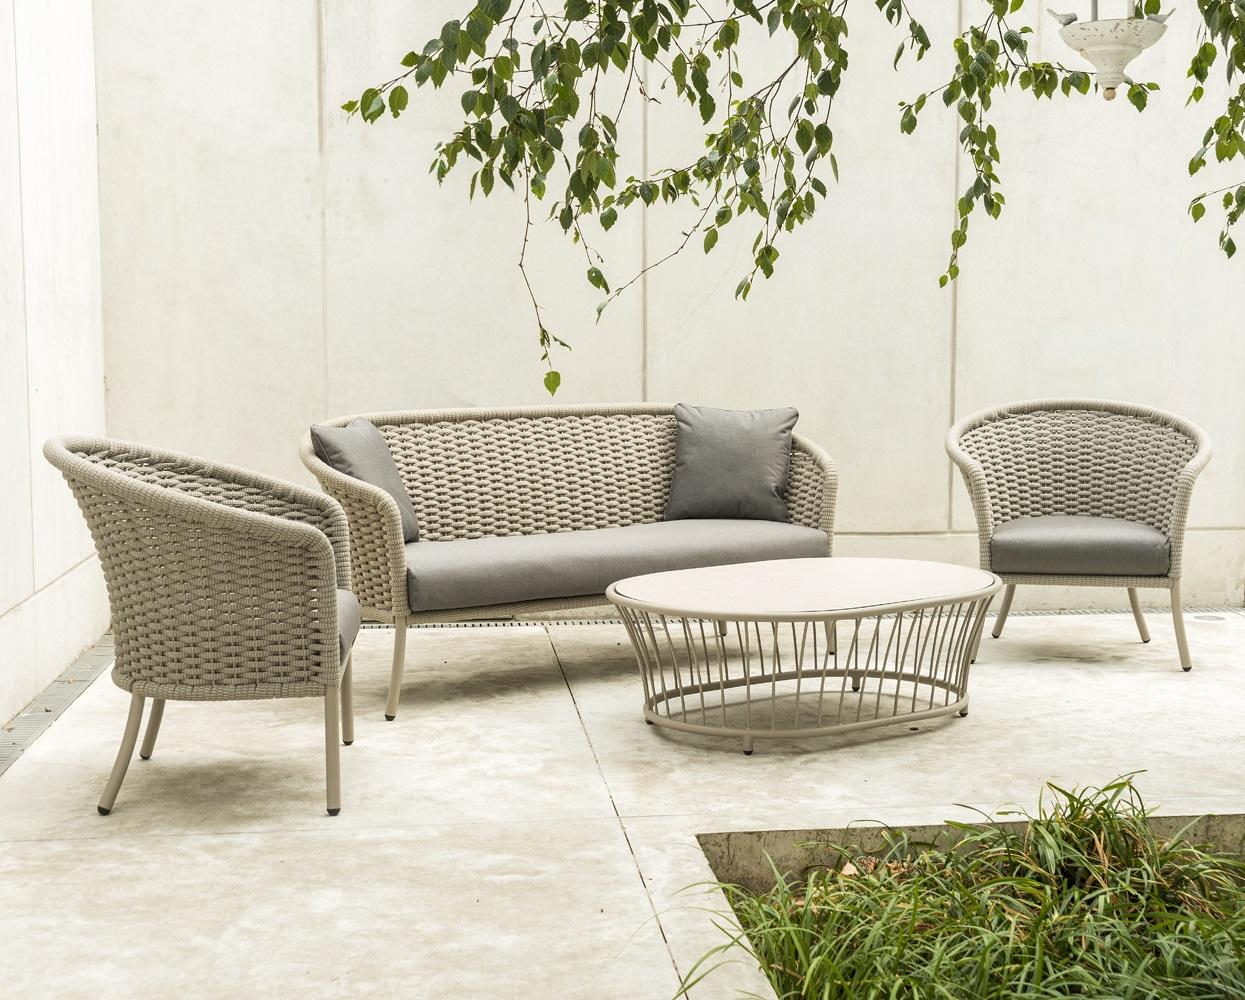 modern rope garden lounge sofa set with armchairs and coffee table